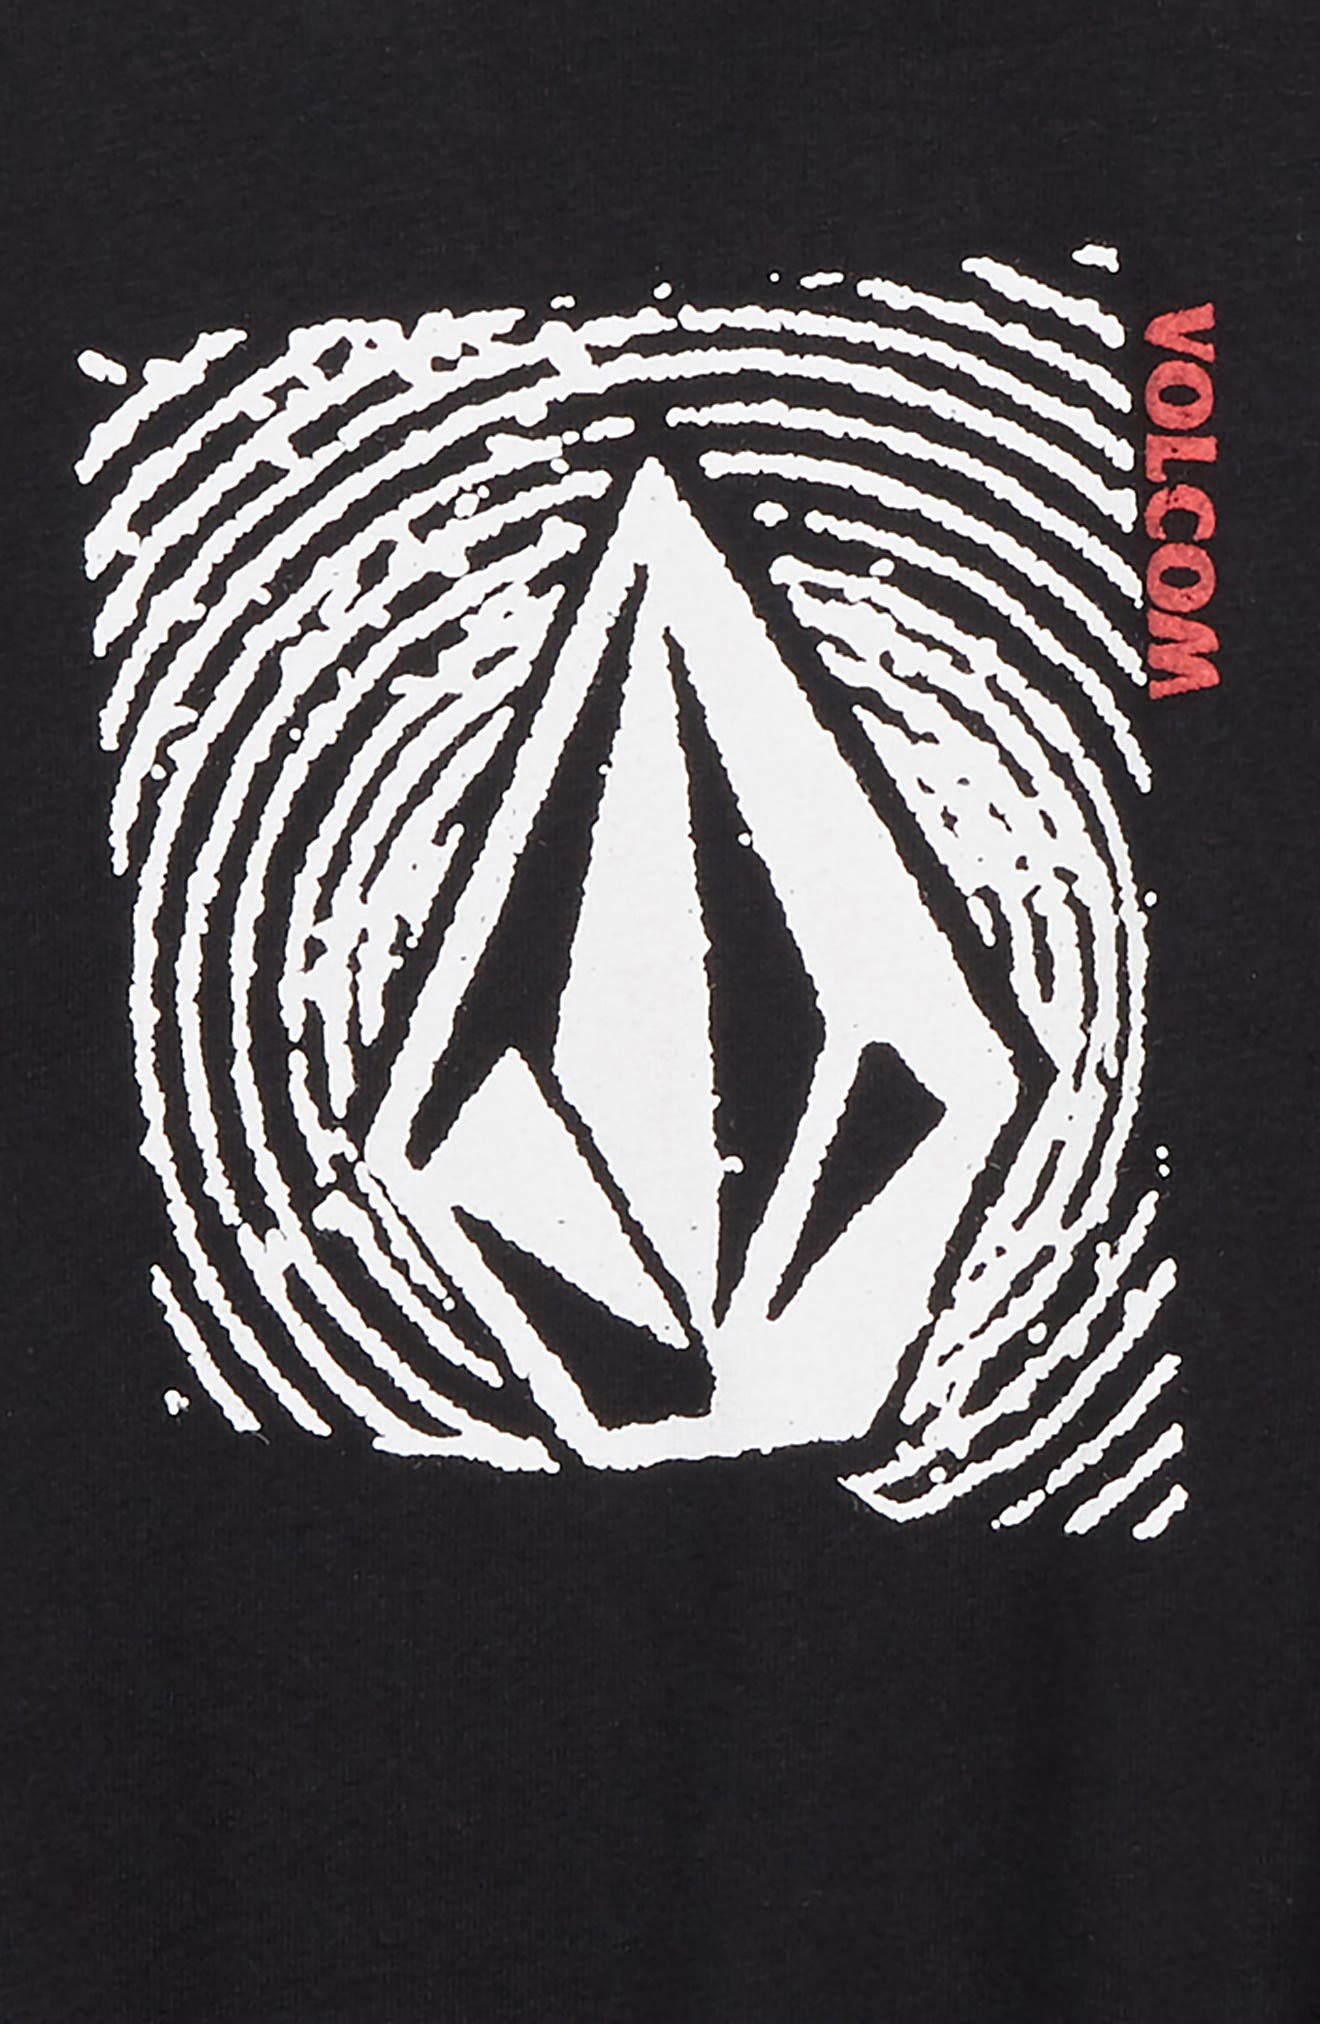 VOLCOM,                             Stonar Waves Logo T-Shirt,                             Alternate thumbnail 3, color,                             001